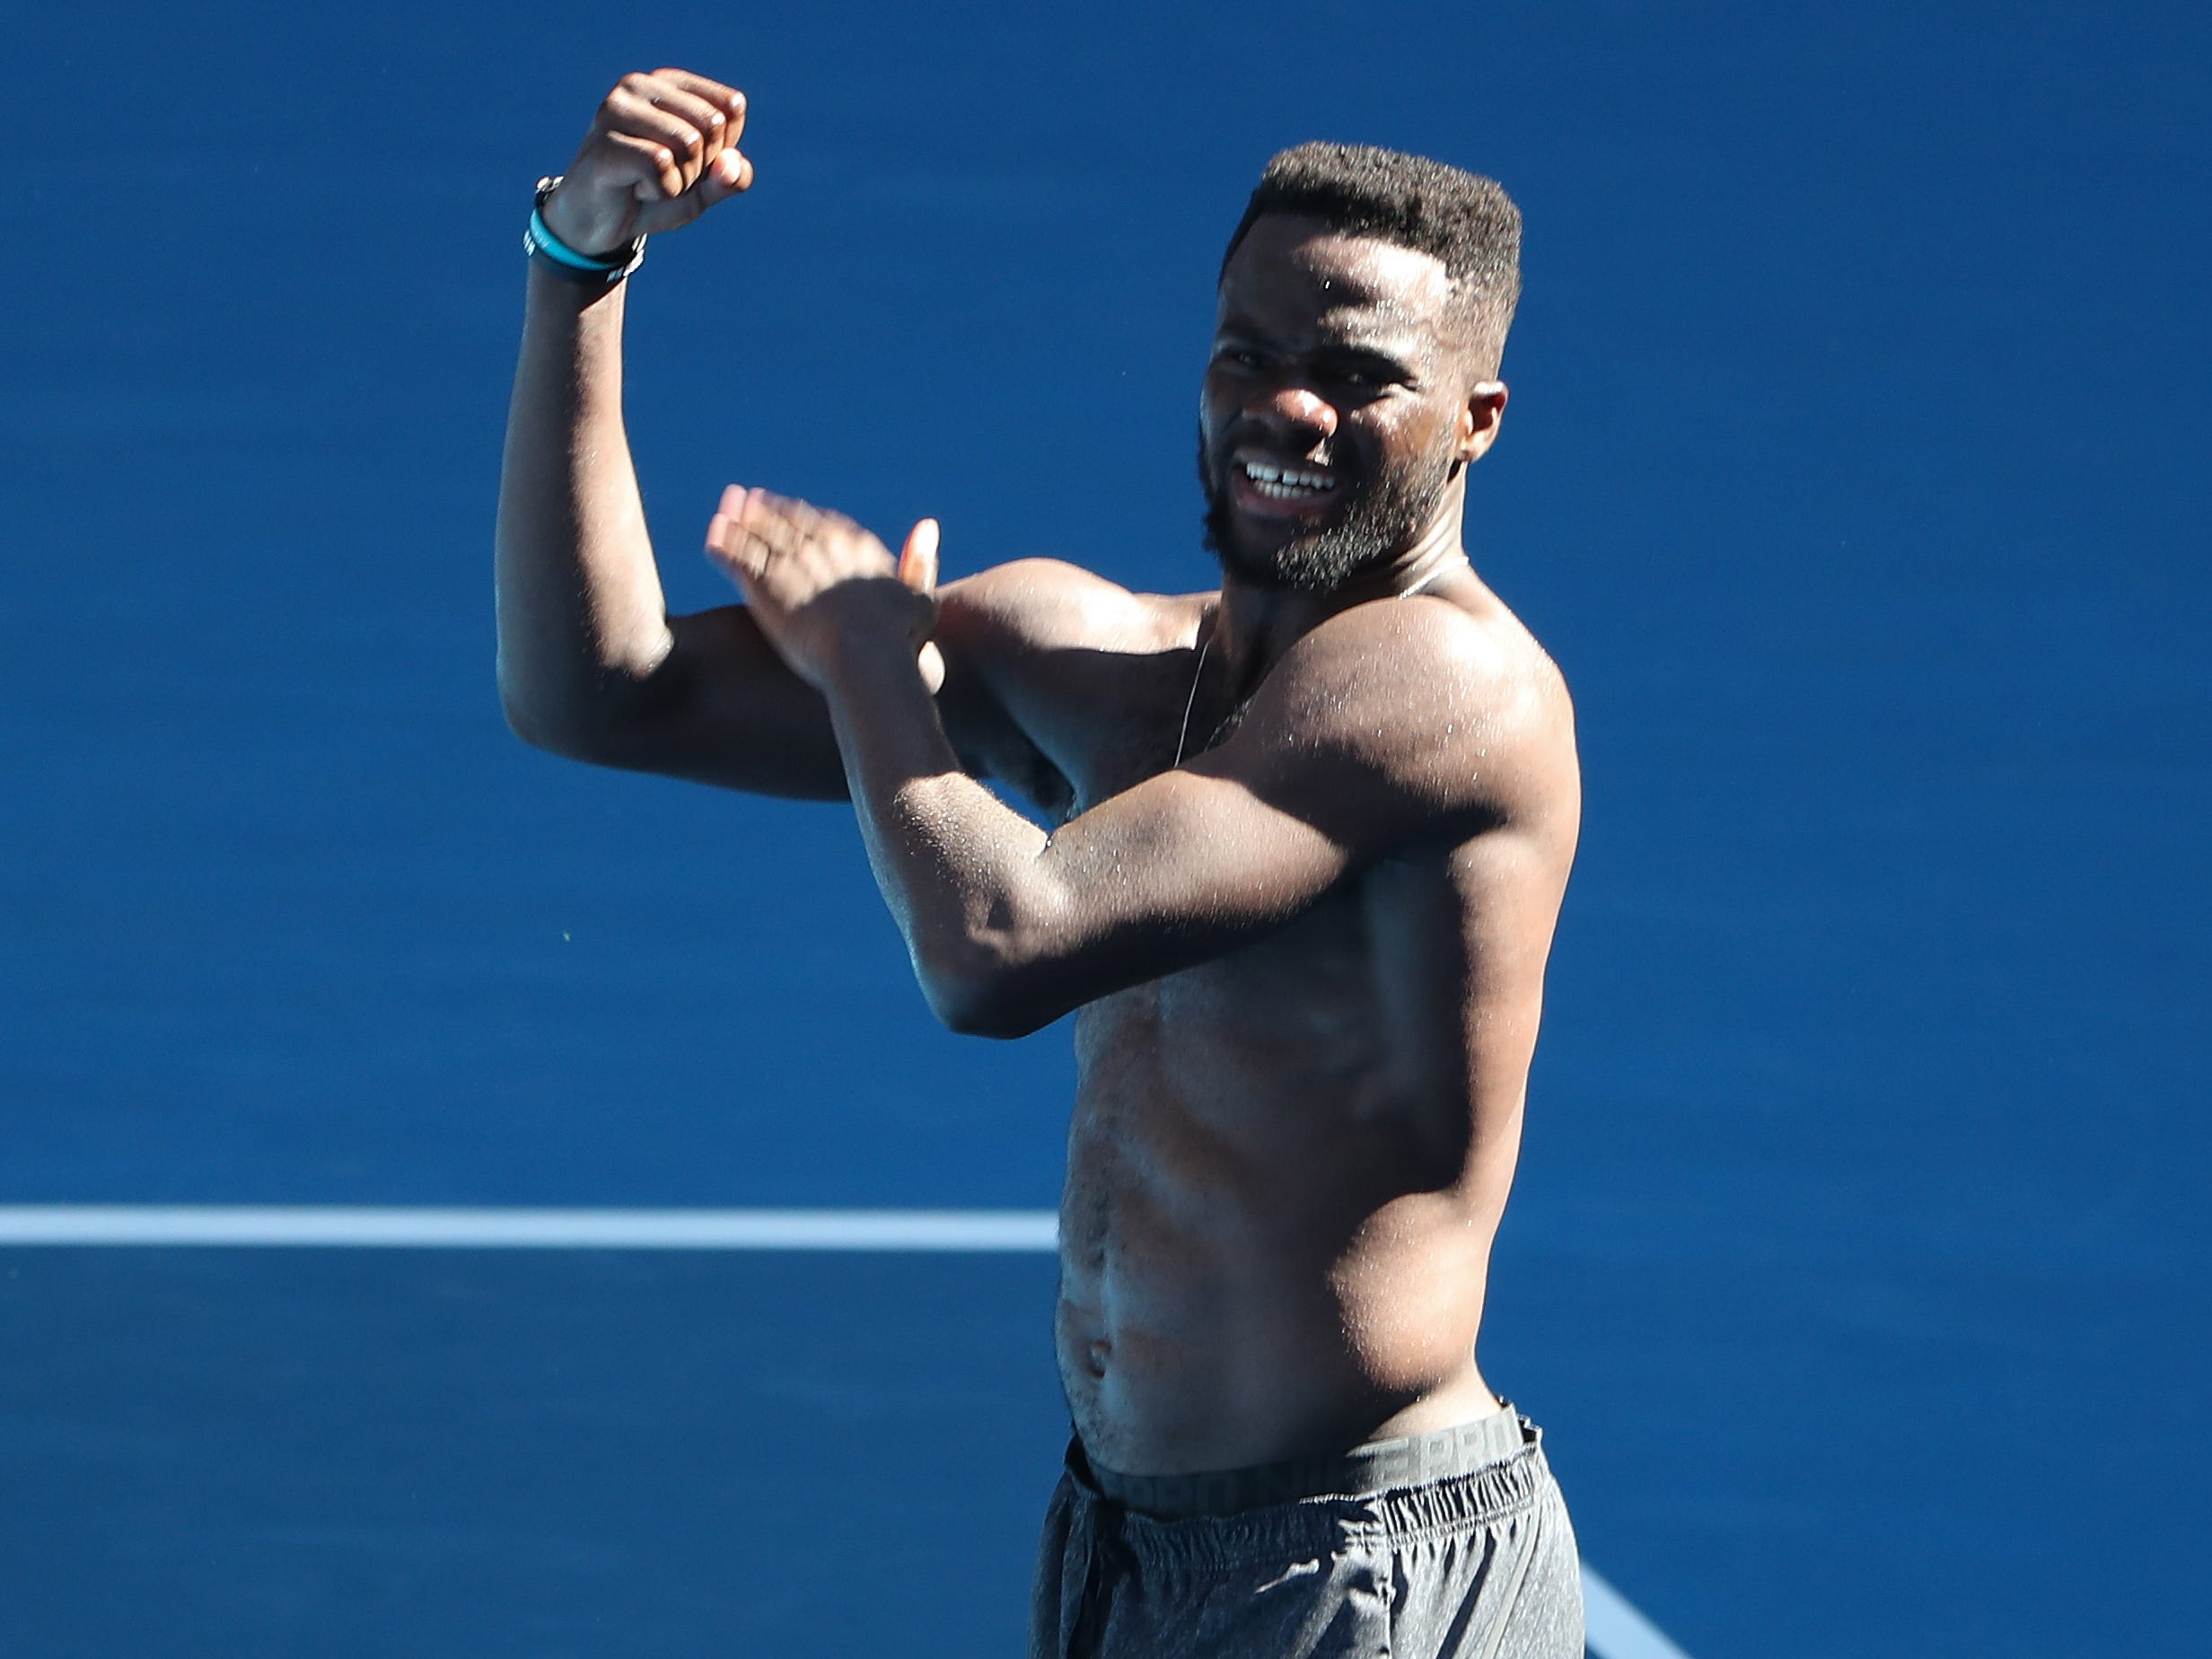 Frances Tiafoe celebrates after upsetting Grigor Dimitrov to advance to the quarterfinals.